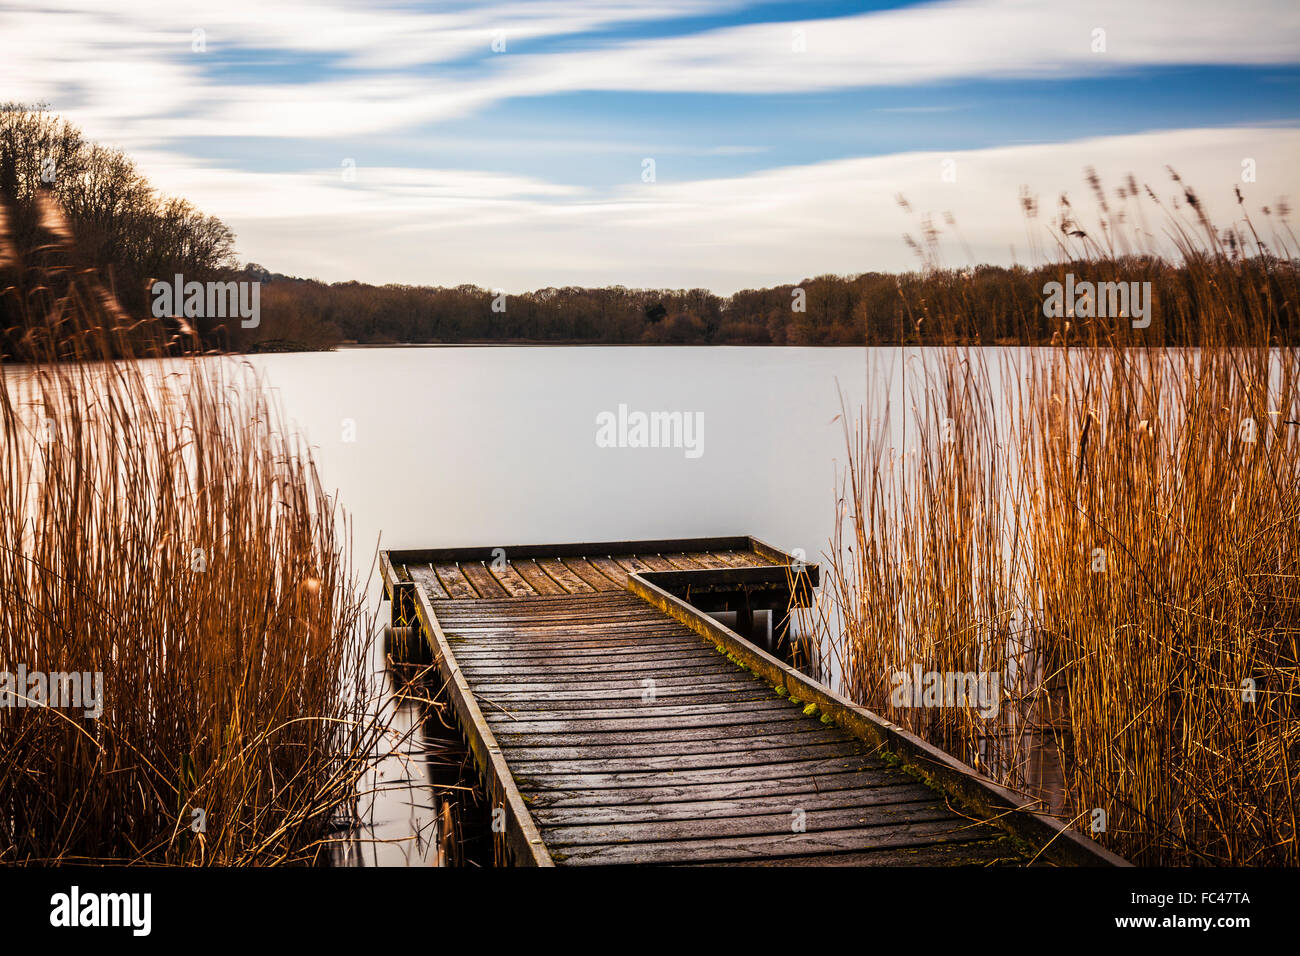 A sunny winter's day on Coate Water in Swindon. - Stock Image